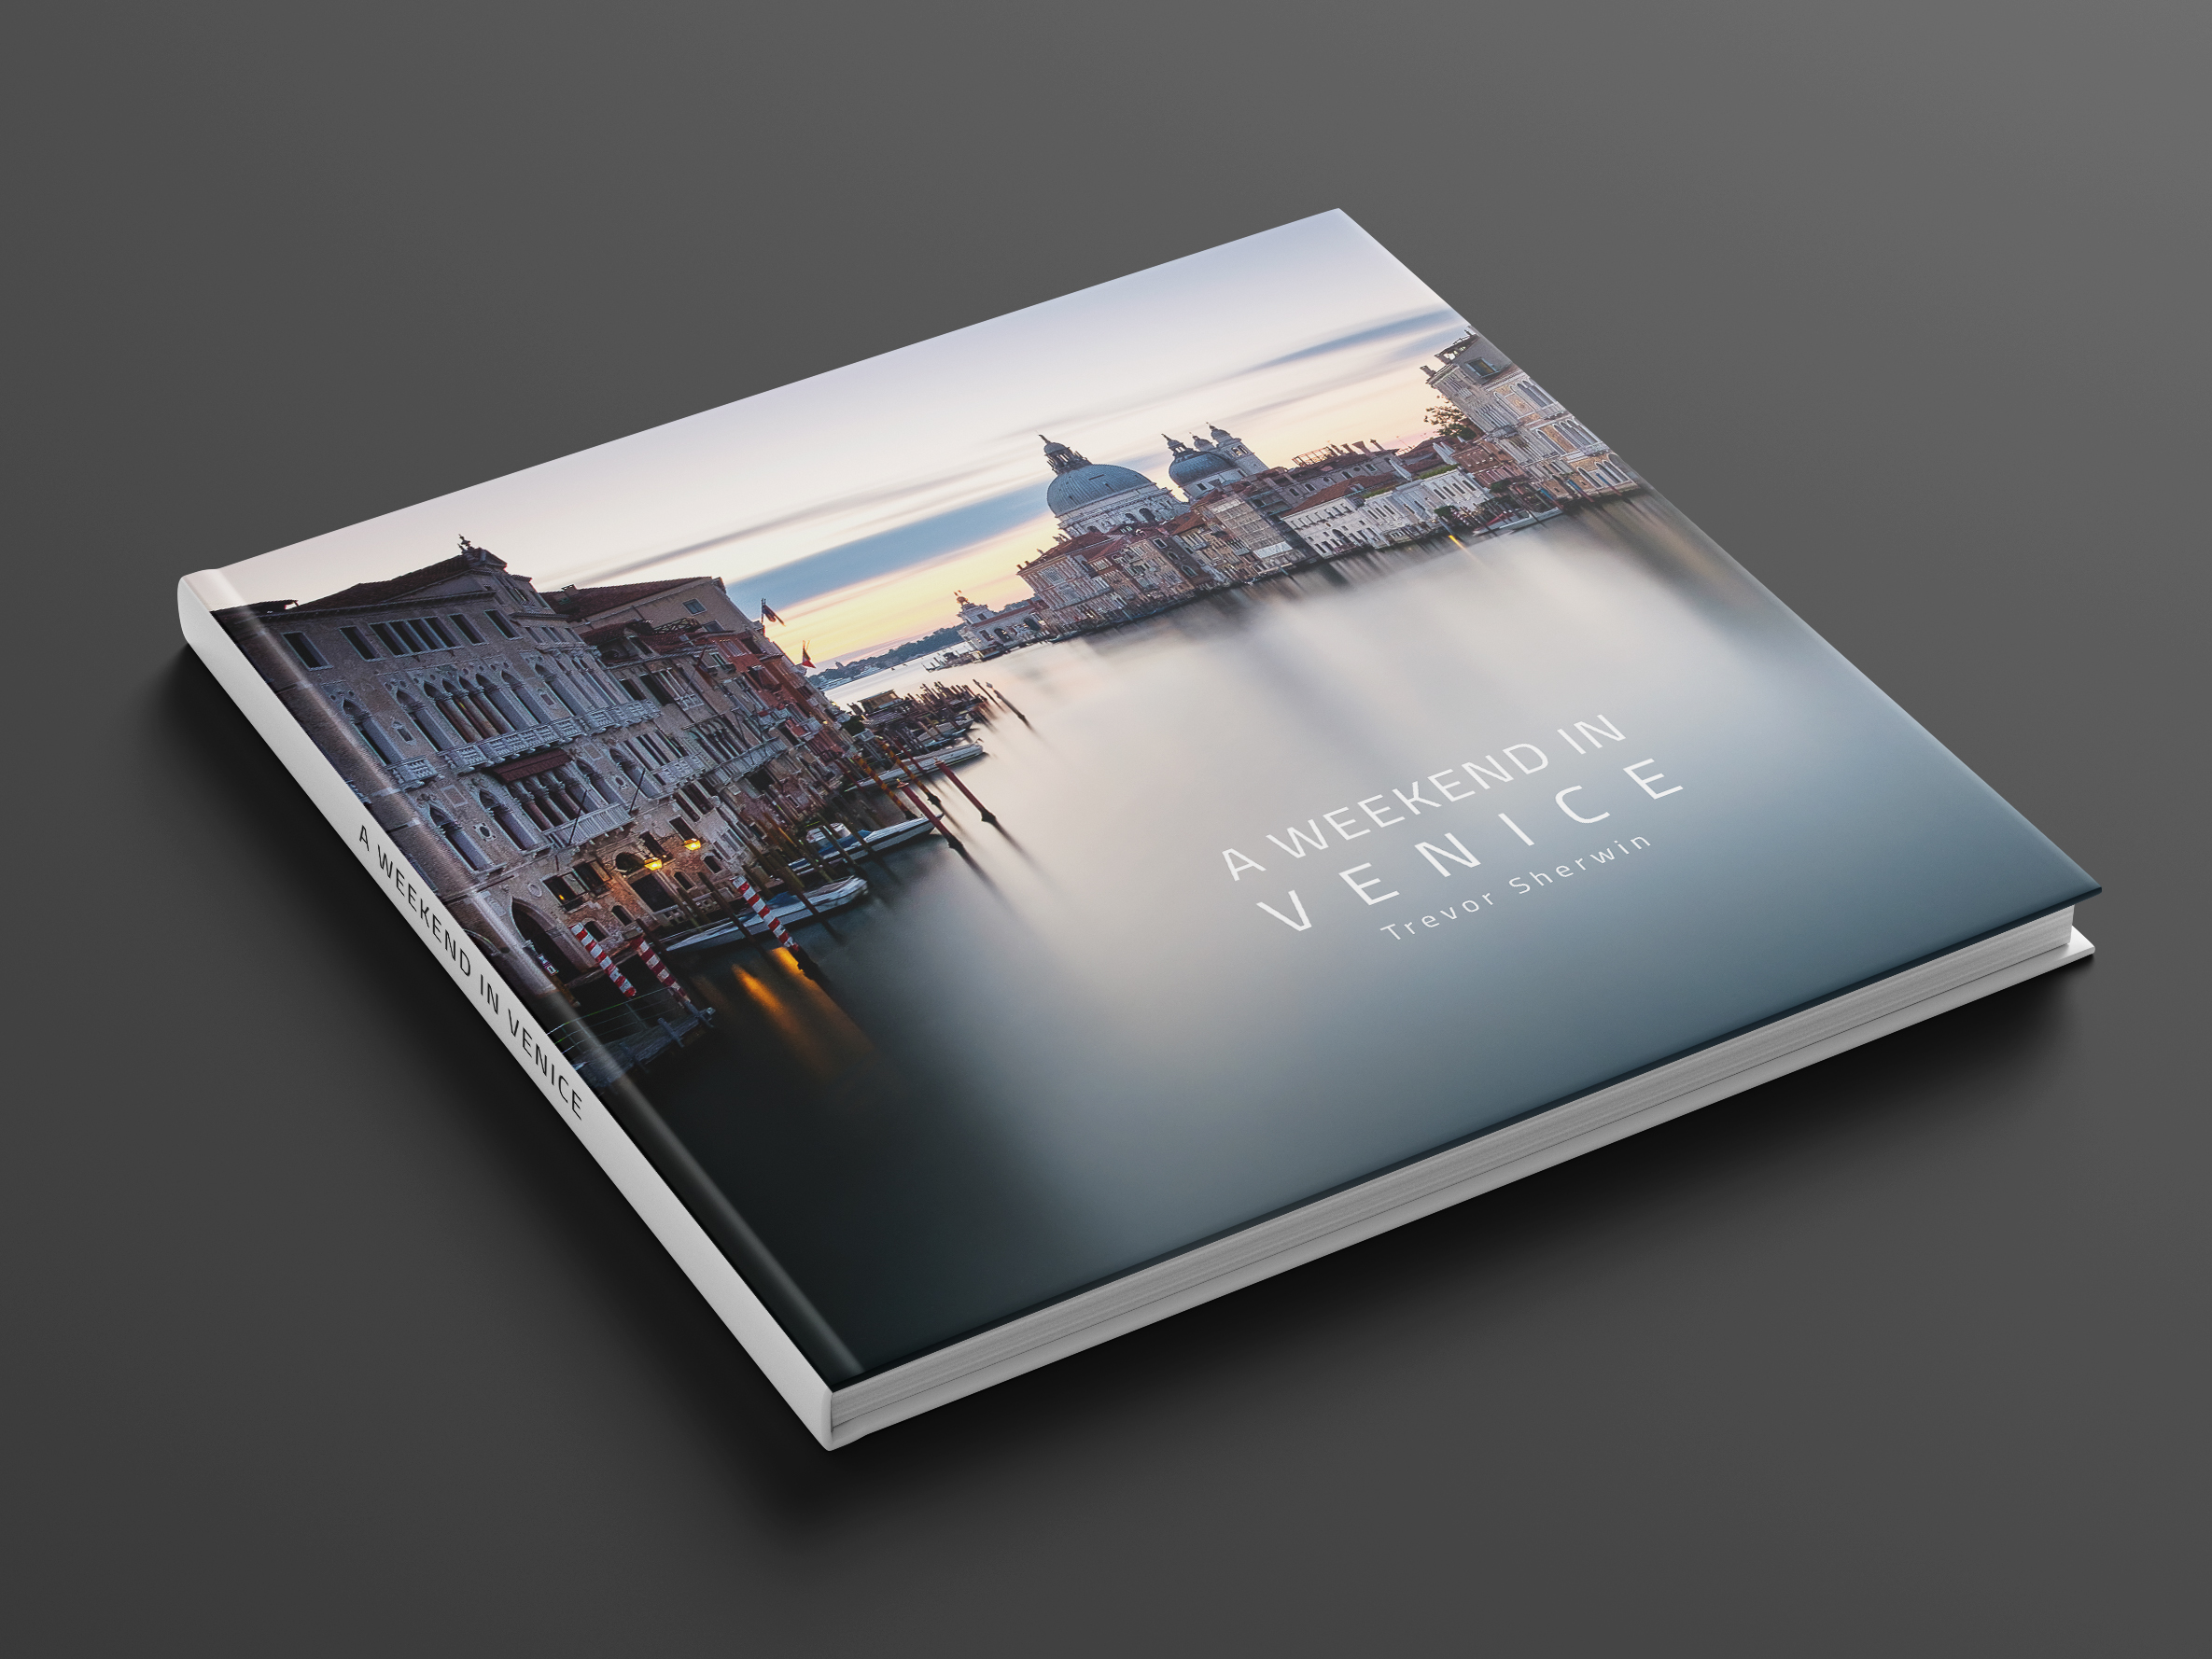 A weekend on Venice photo book cover